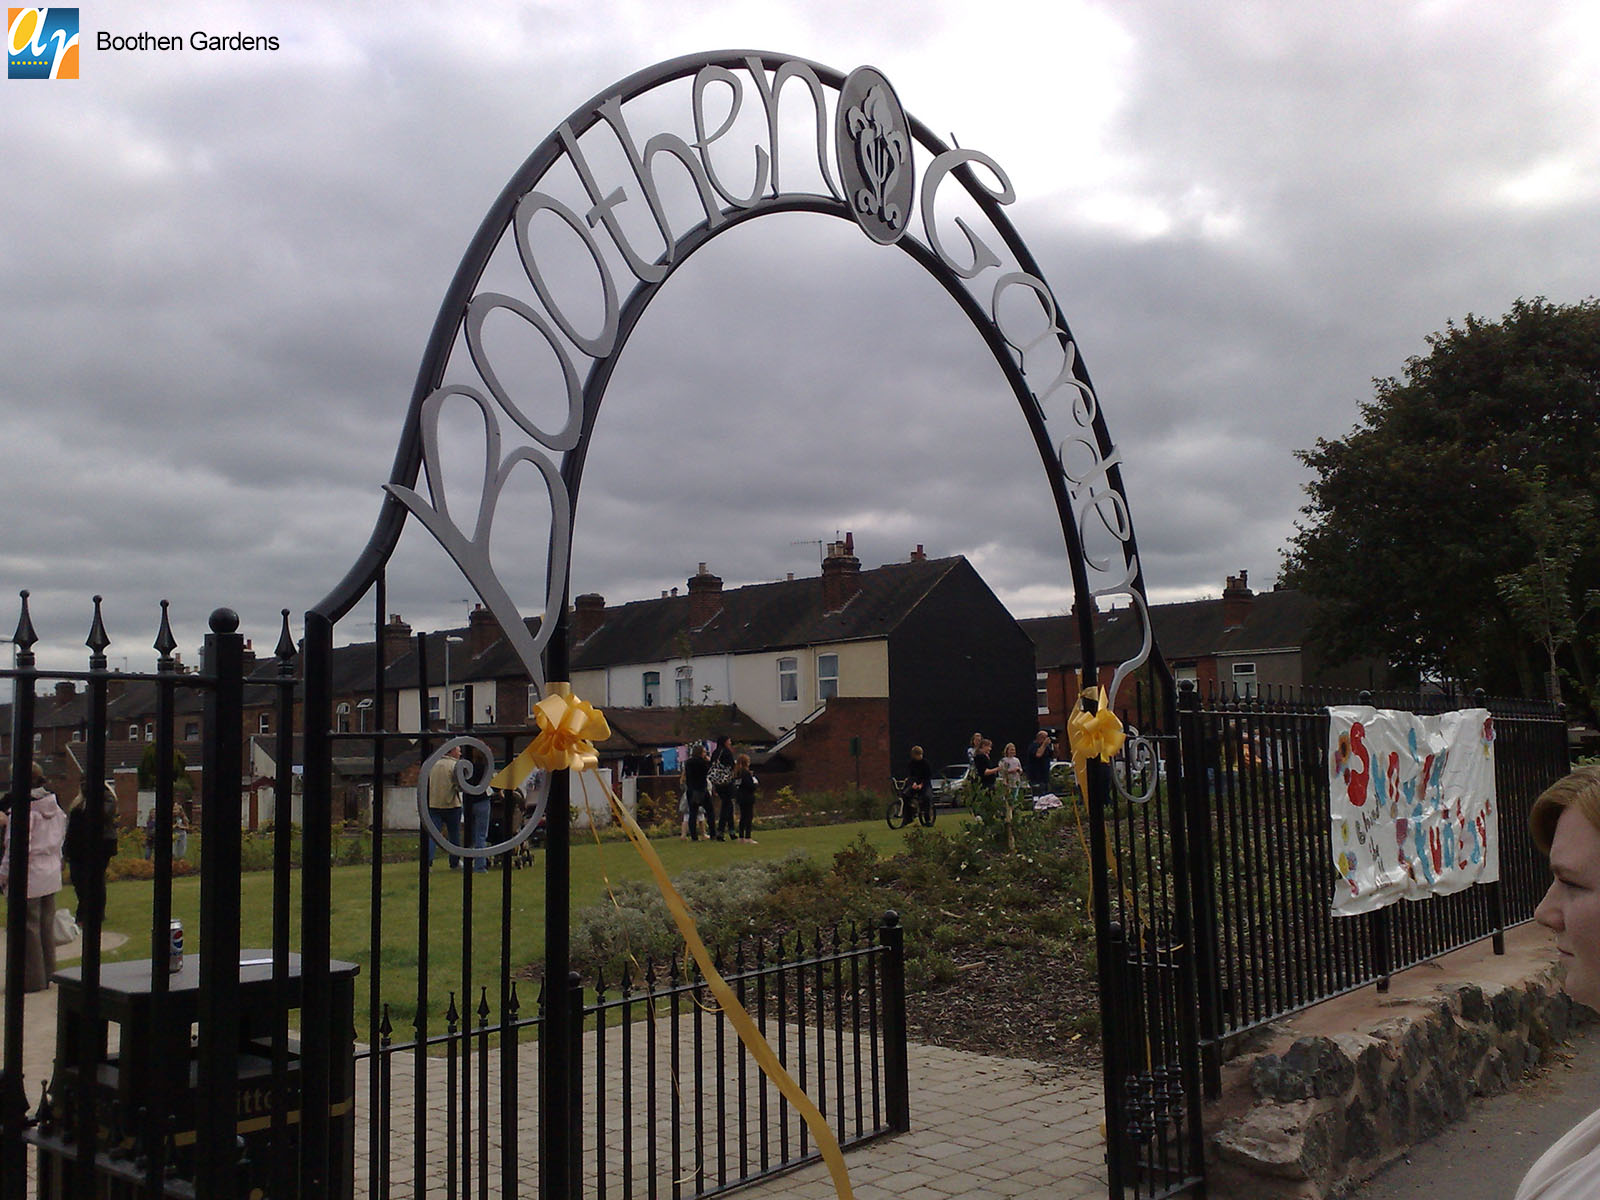 Boothen Gardens metal archway